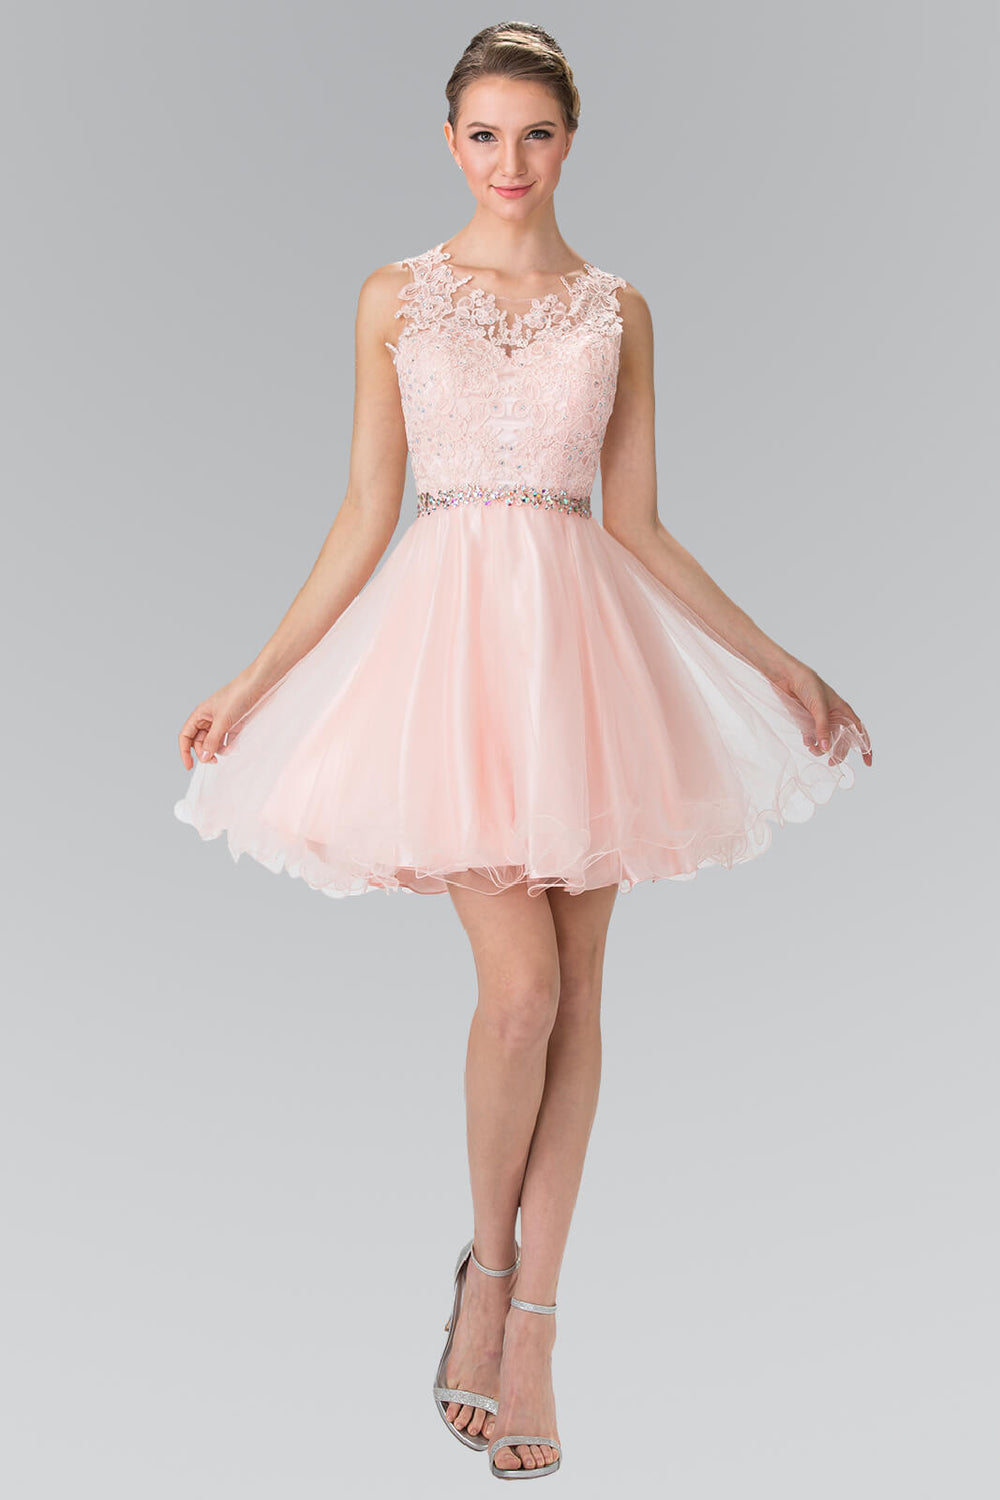 Sleeveless Prom Short Dress Homecoming - The Dress Outlet Blush